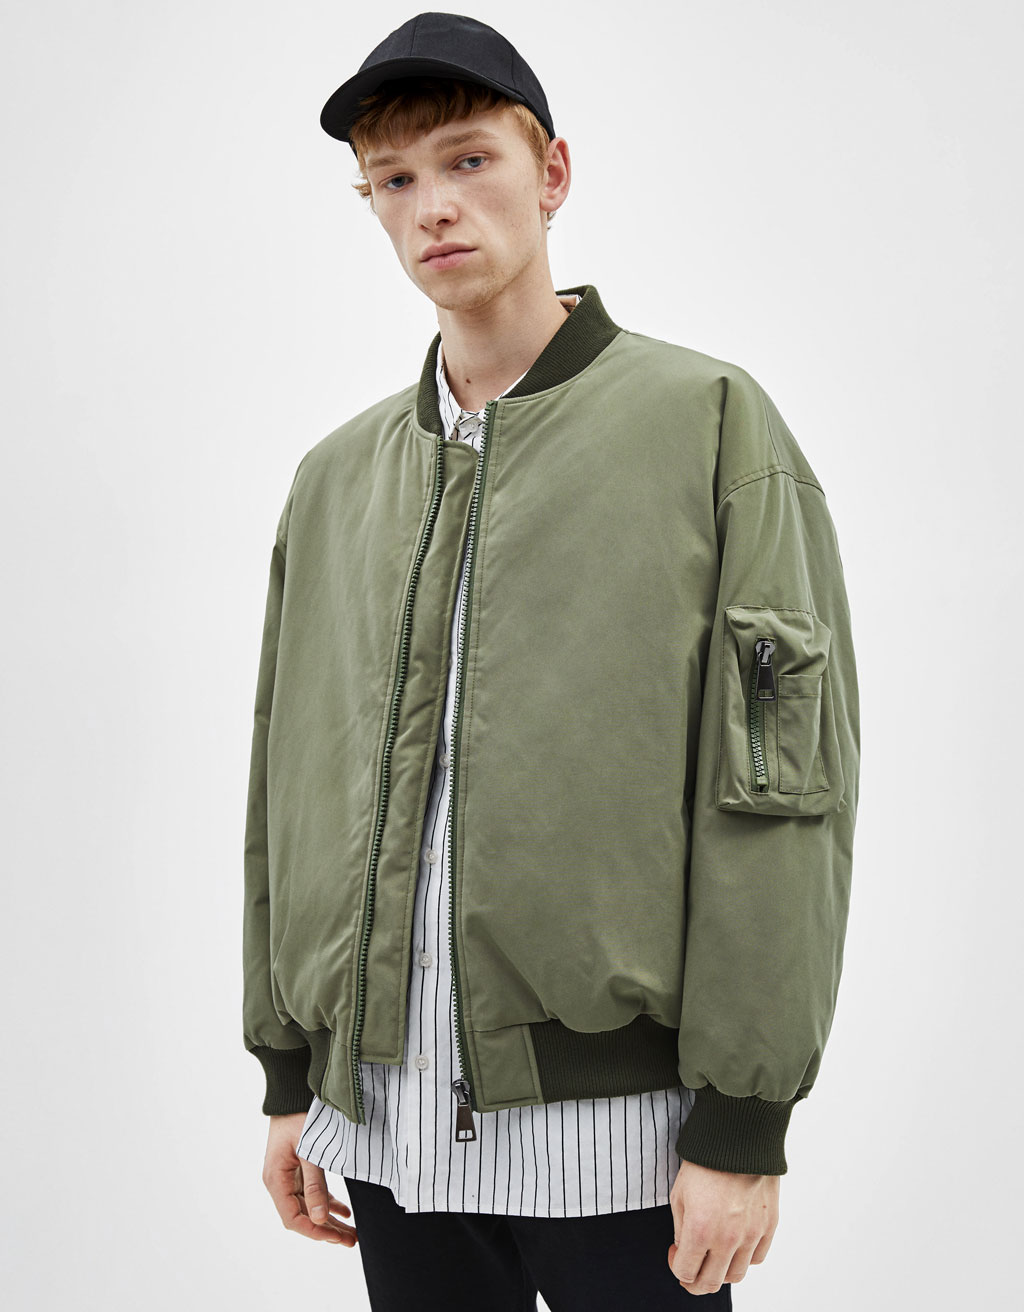 Oversized bomber jacket